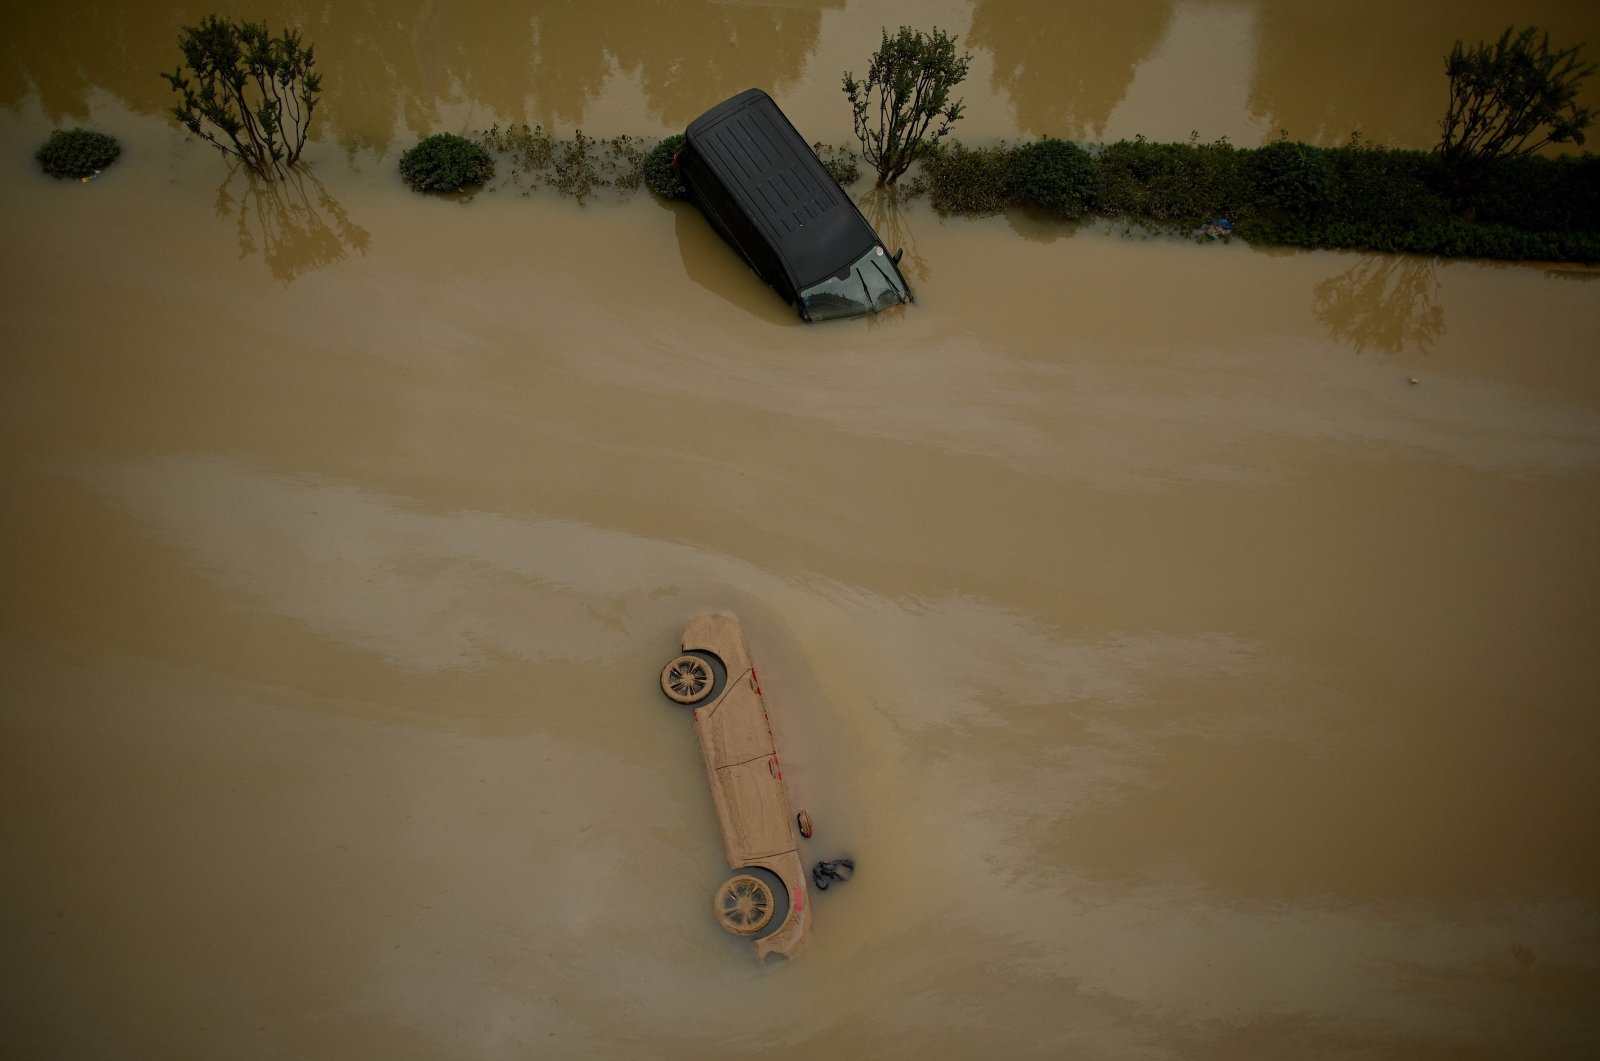 Cars sit in floodwaters following heavy rains, in Zhengzhou, China, July 22, 2021. (AFP Photo)